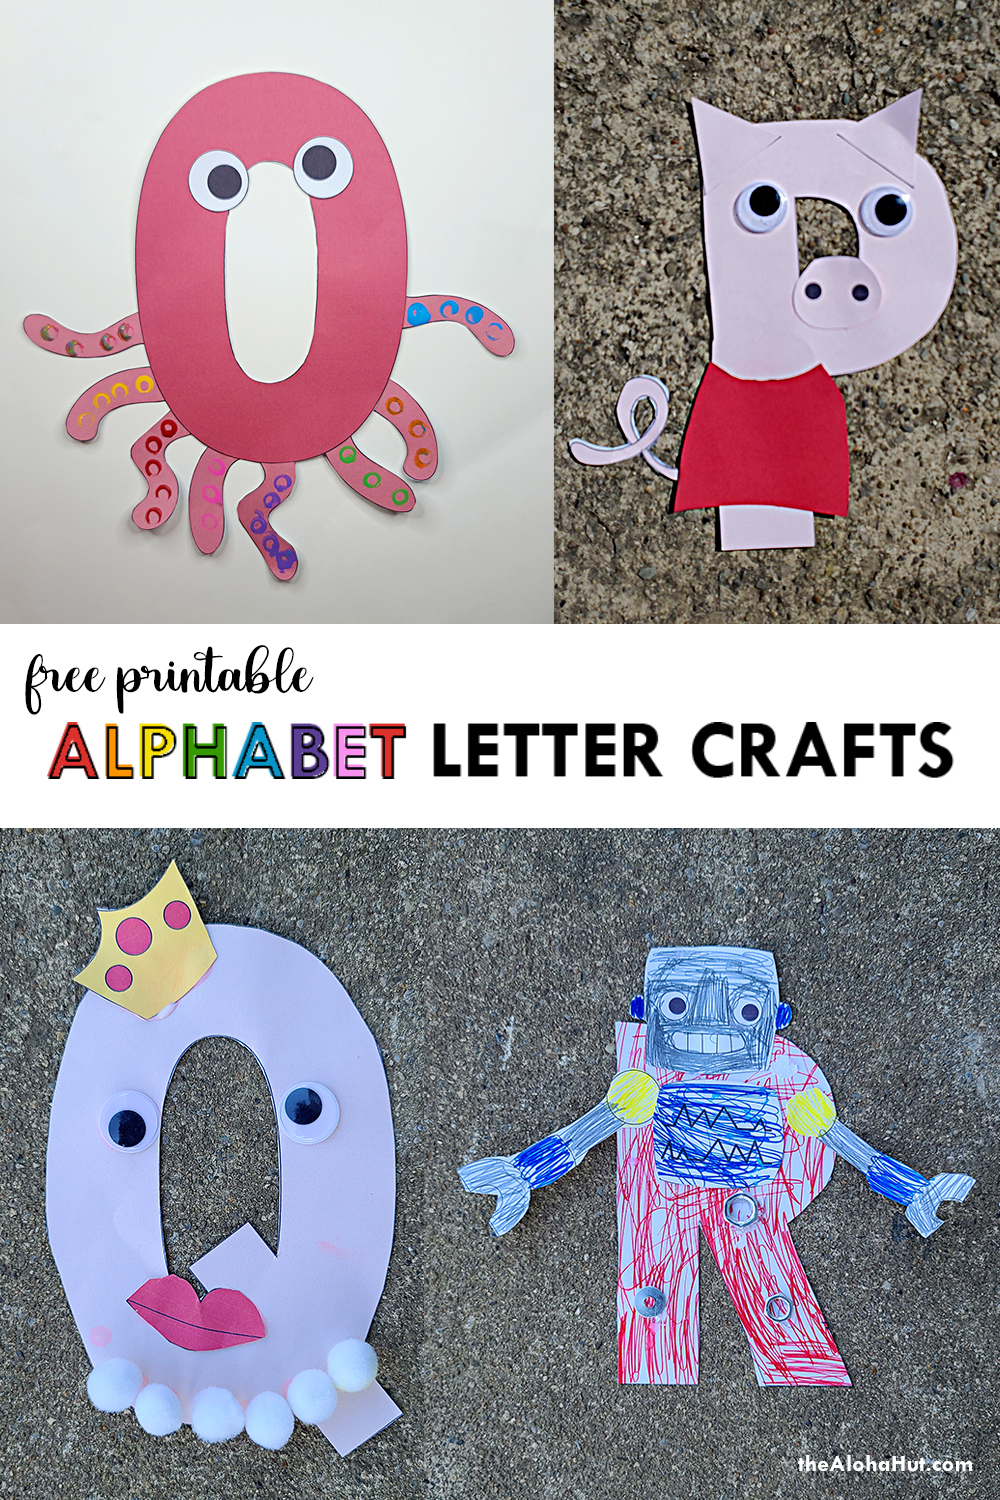 Alphabet Letter Crafts - Letters O P Q R - free printables by the Aloha Hut